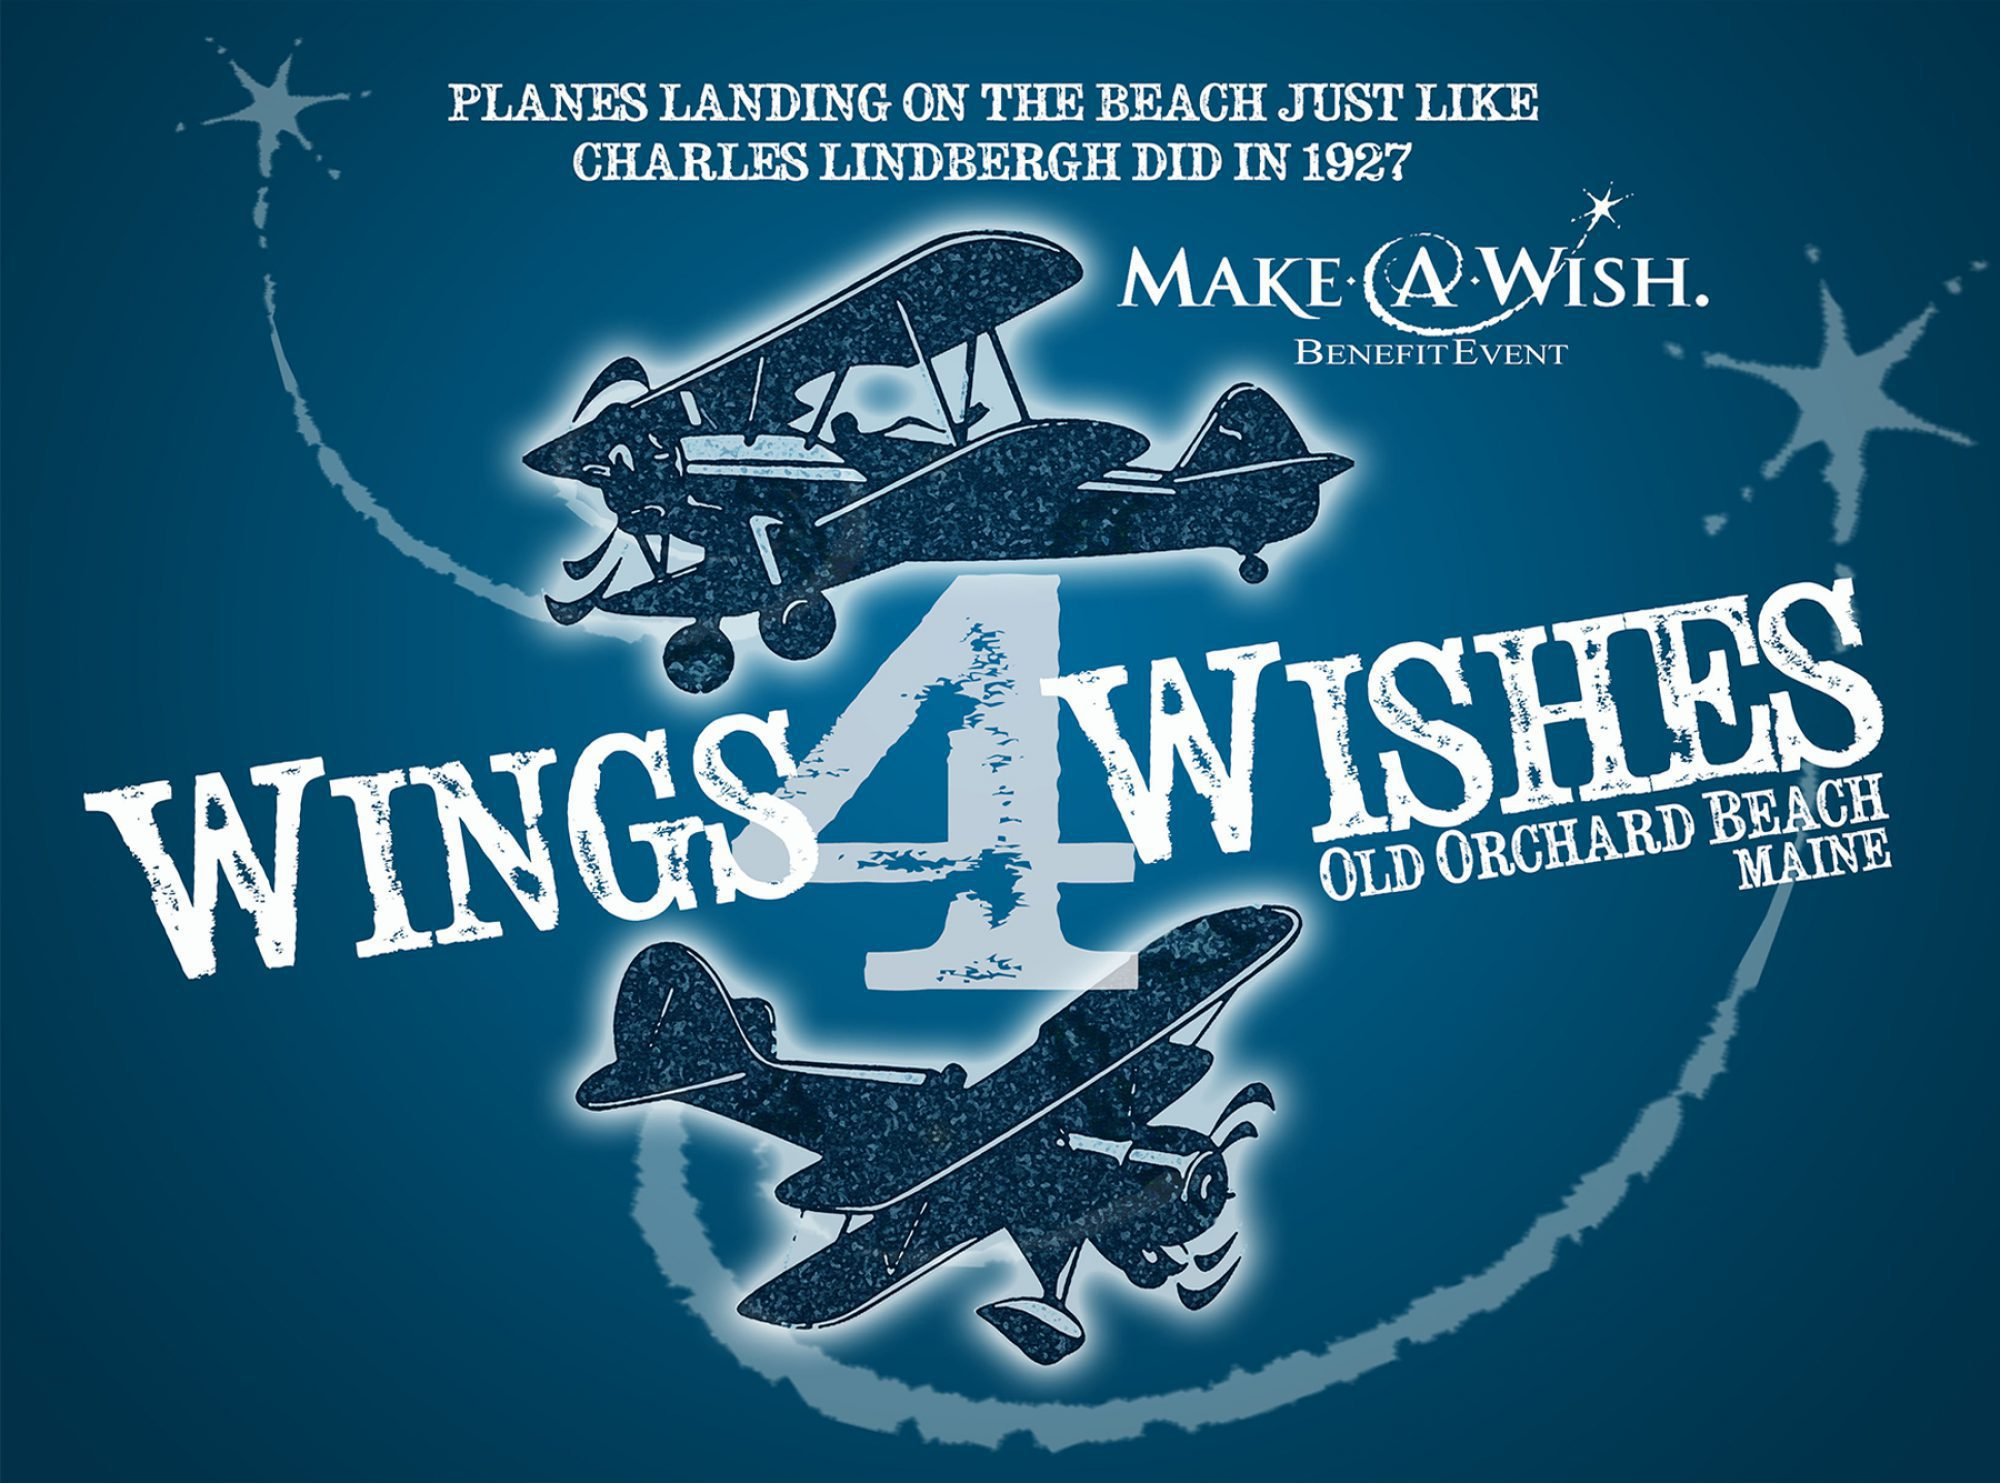 Wings 4 Wishes